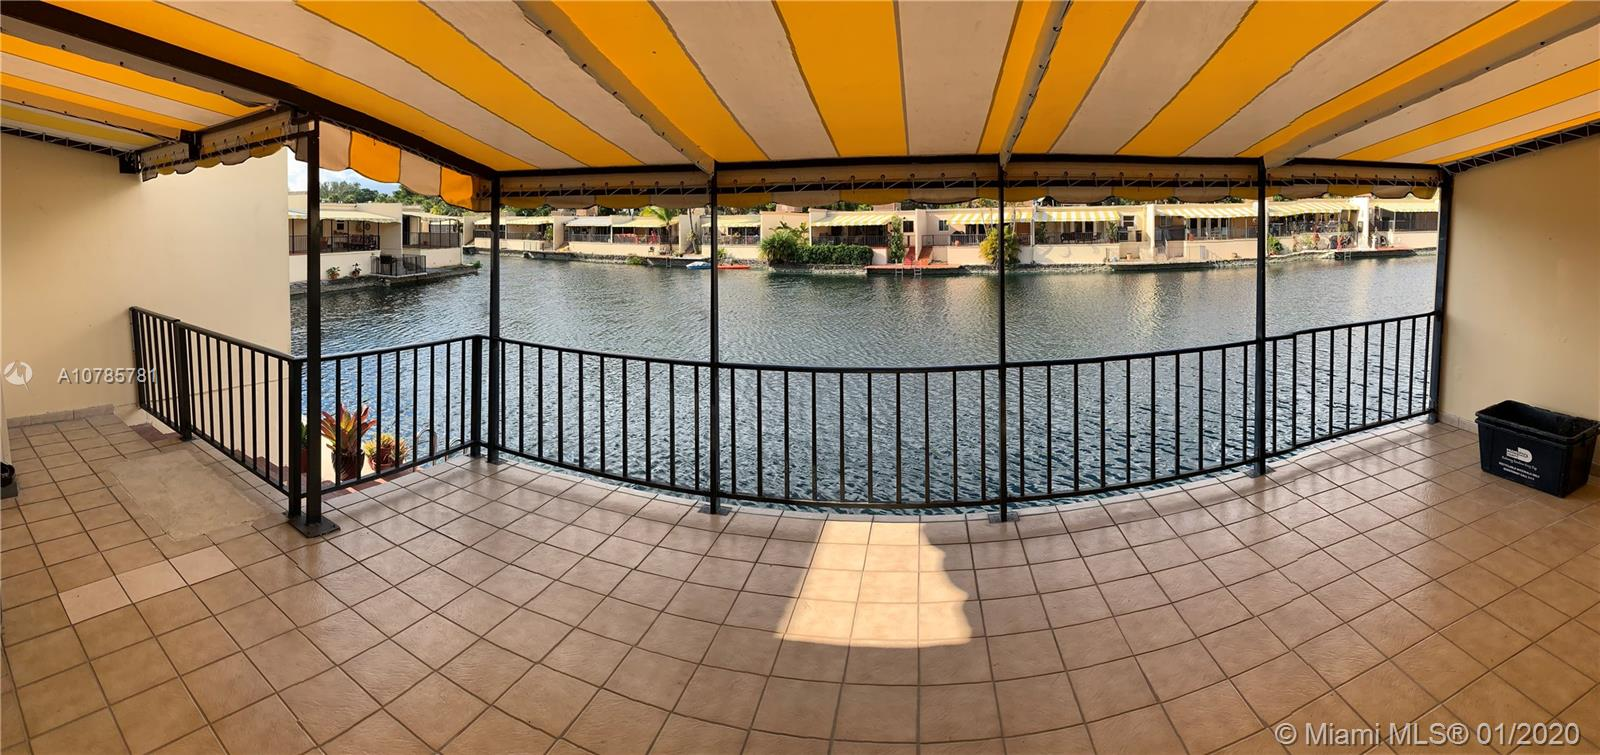 15504 Sharpecroft DR, Miami Lakes, Florida 33014, 3 Bedrooms Bedrooms, ,2 BathroomsBathrooms,Residential Lease,For Rent,15504 Sharpecroft DR,A10785781